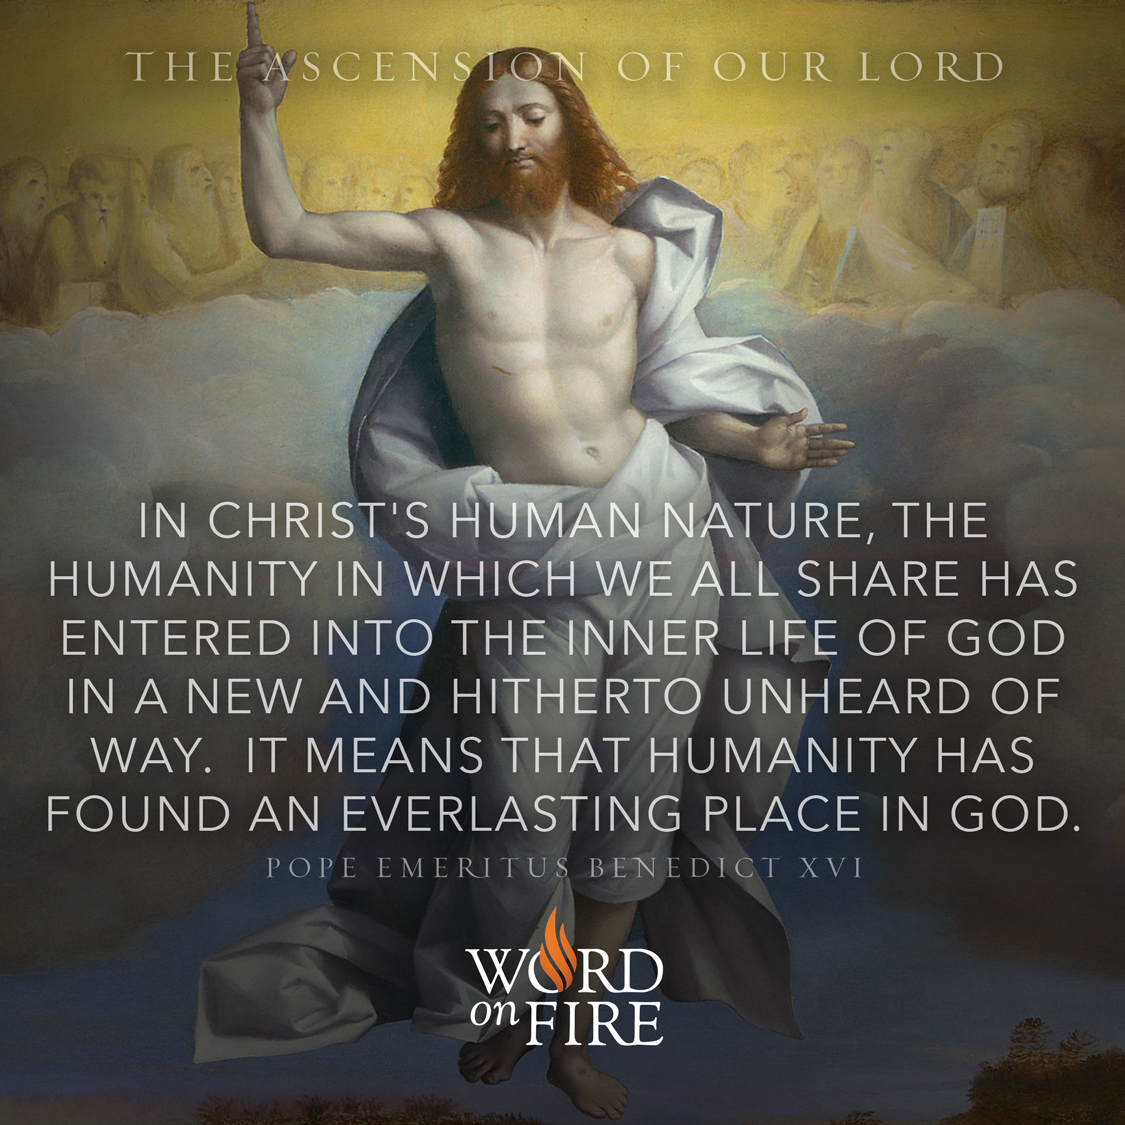 PRAYERGRAPHIC_AscensionoftheLord-3